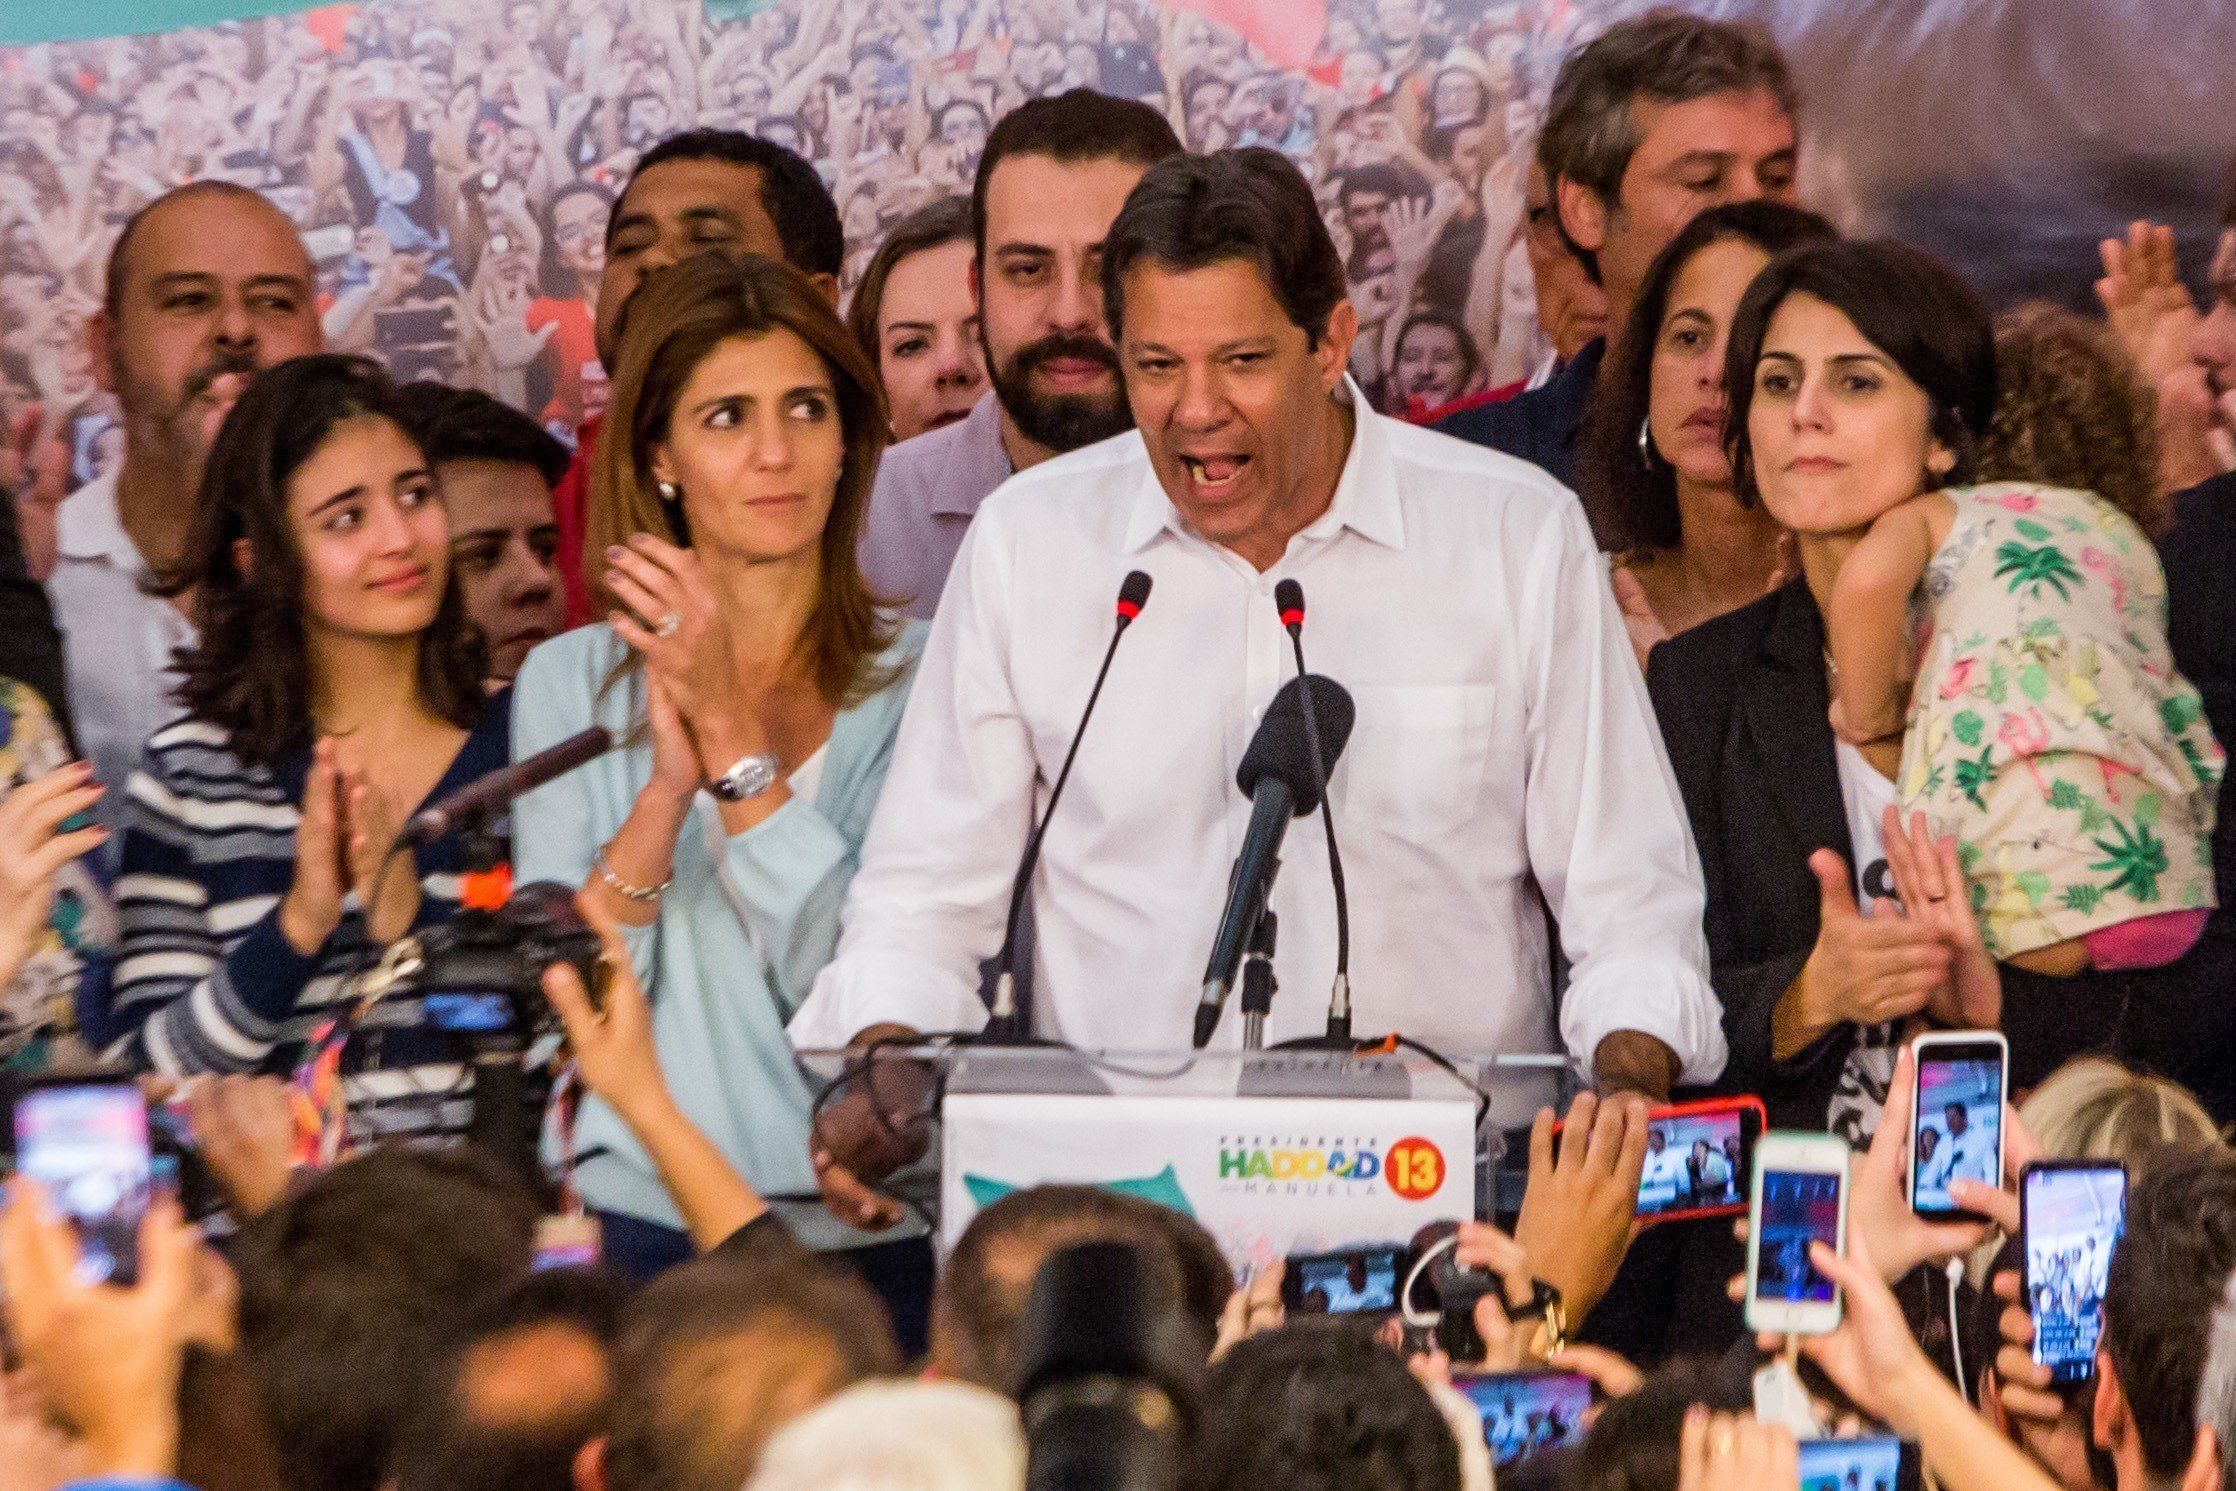 SAO PAULO, BRAZIL - OCTOBER 28: Presidential candidate for the Workers' Party (PT) Fernando Haddad (C) speaks in Sao Paulo after being defeated by Jair Bolsonaro on second round of the general elections in Brazil, on October 28, 2018. (Photo by Carla Carniel/Anadolu Agency/Getty Images)